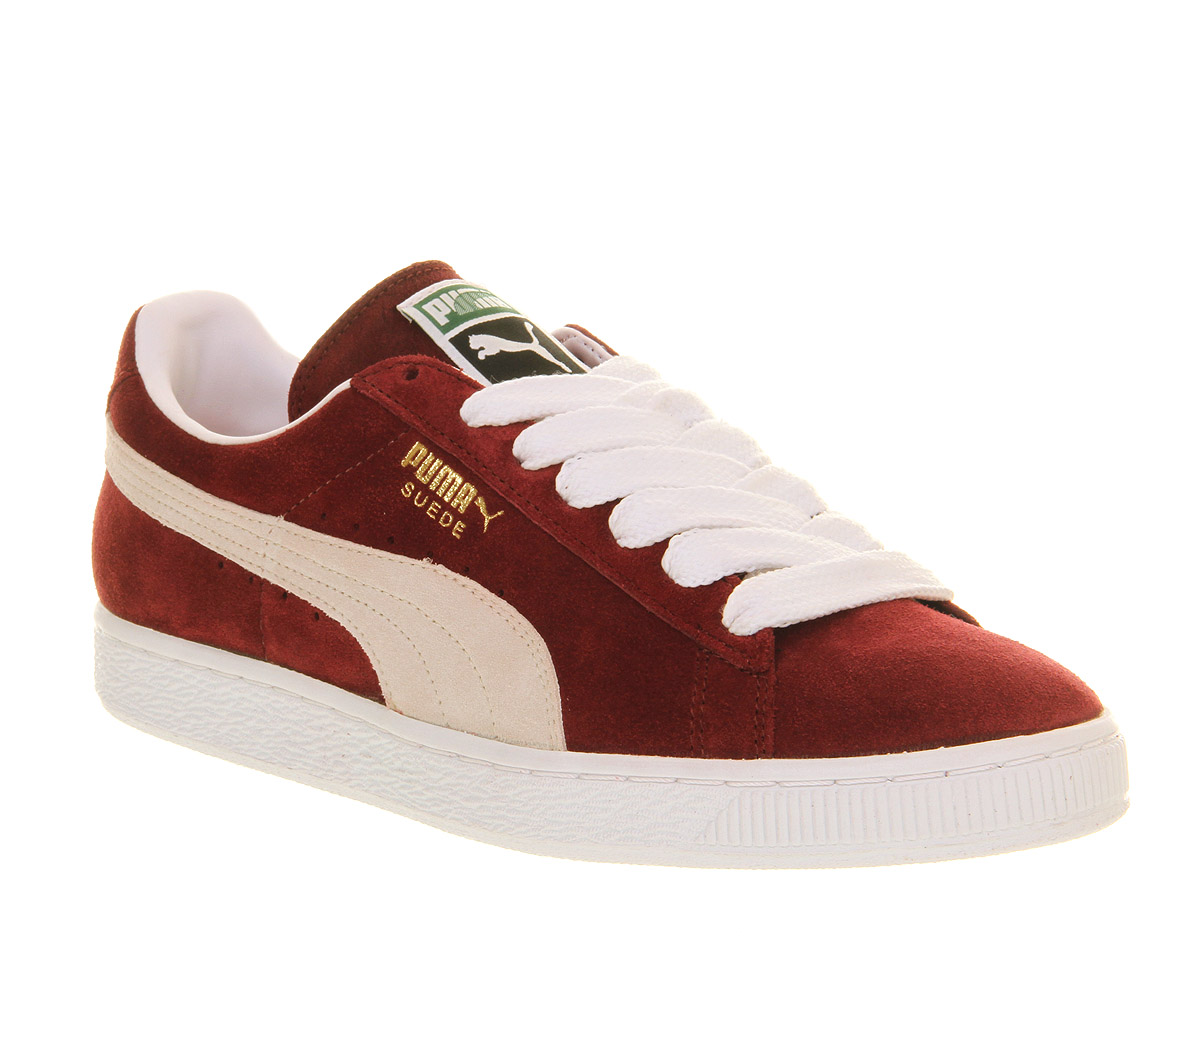 Mens-Puma-Suede-Classic-TEAM-BURGUNDY-WHITE-Trainers-